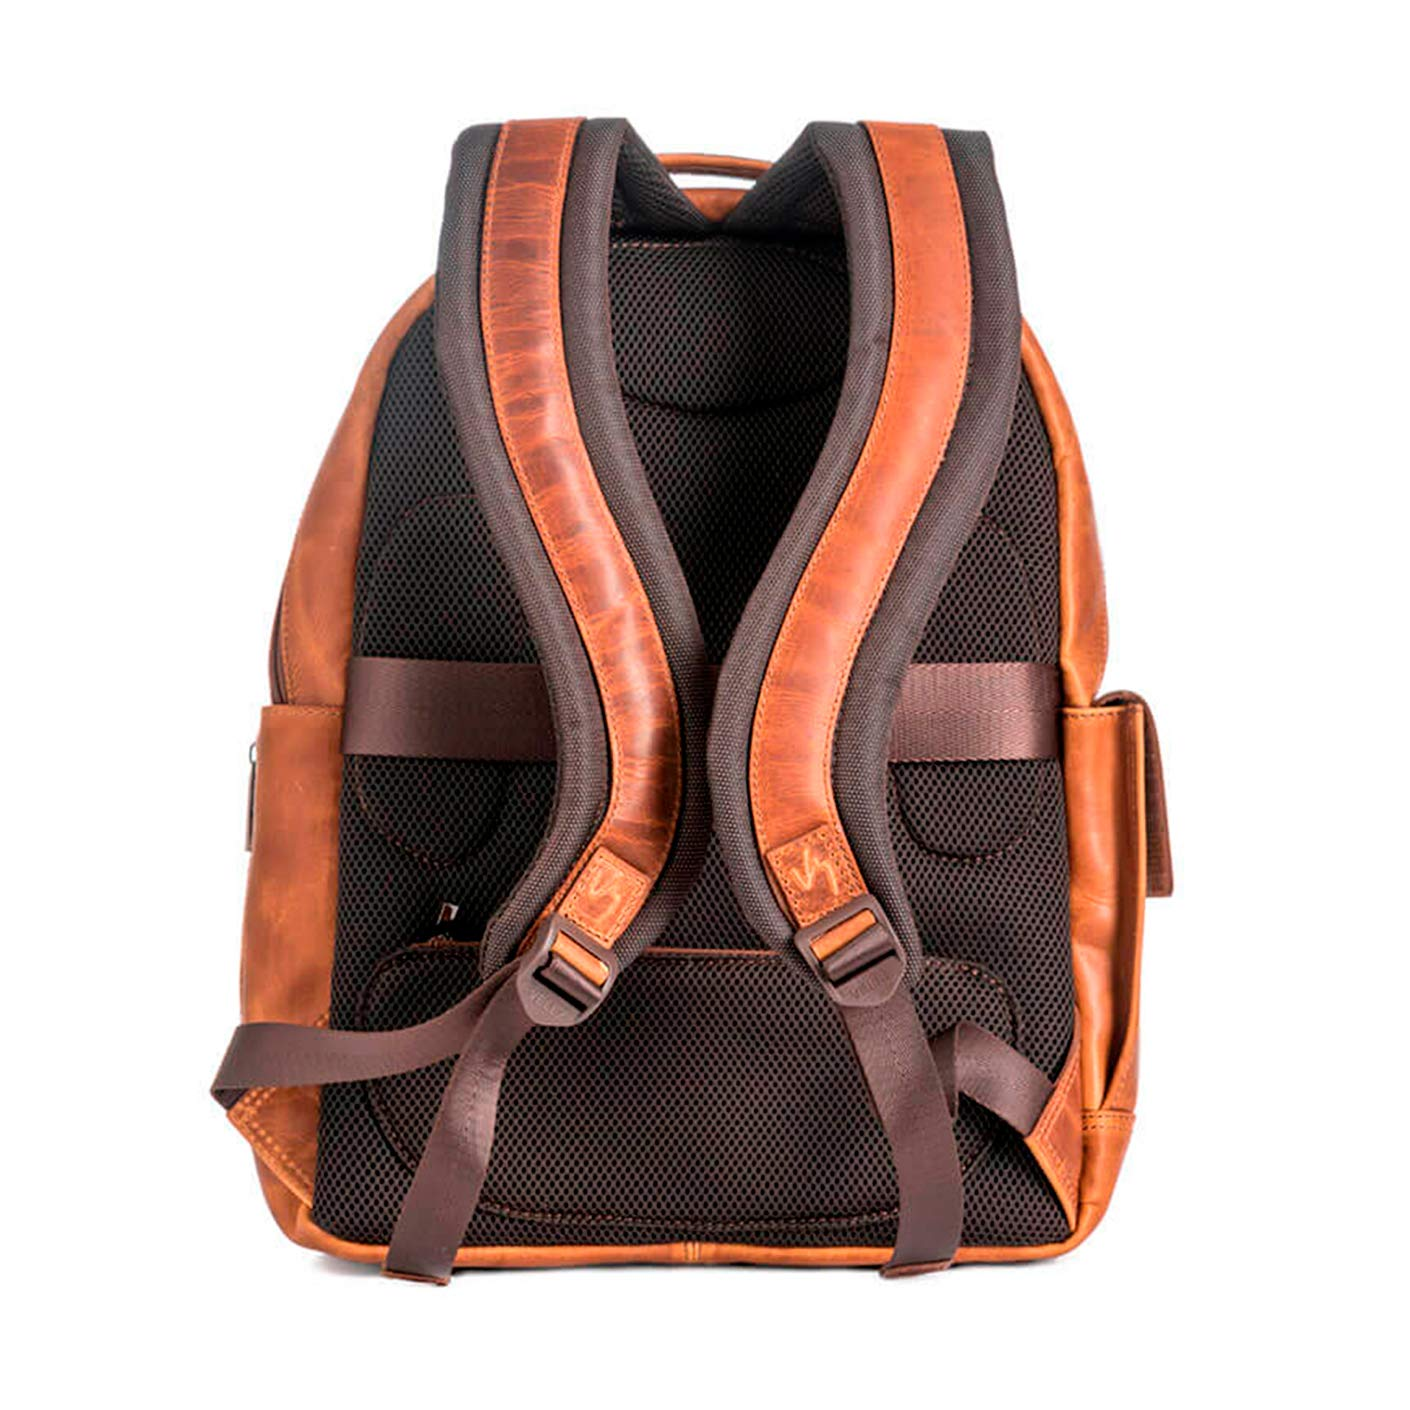 Amazon.com: Velez Colombian Mens Genuine Leather Backpack Bolsos Hombres Cuero Colombiano Black: Shoes